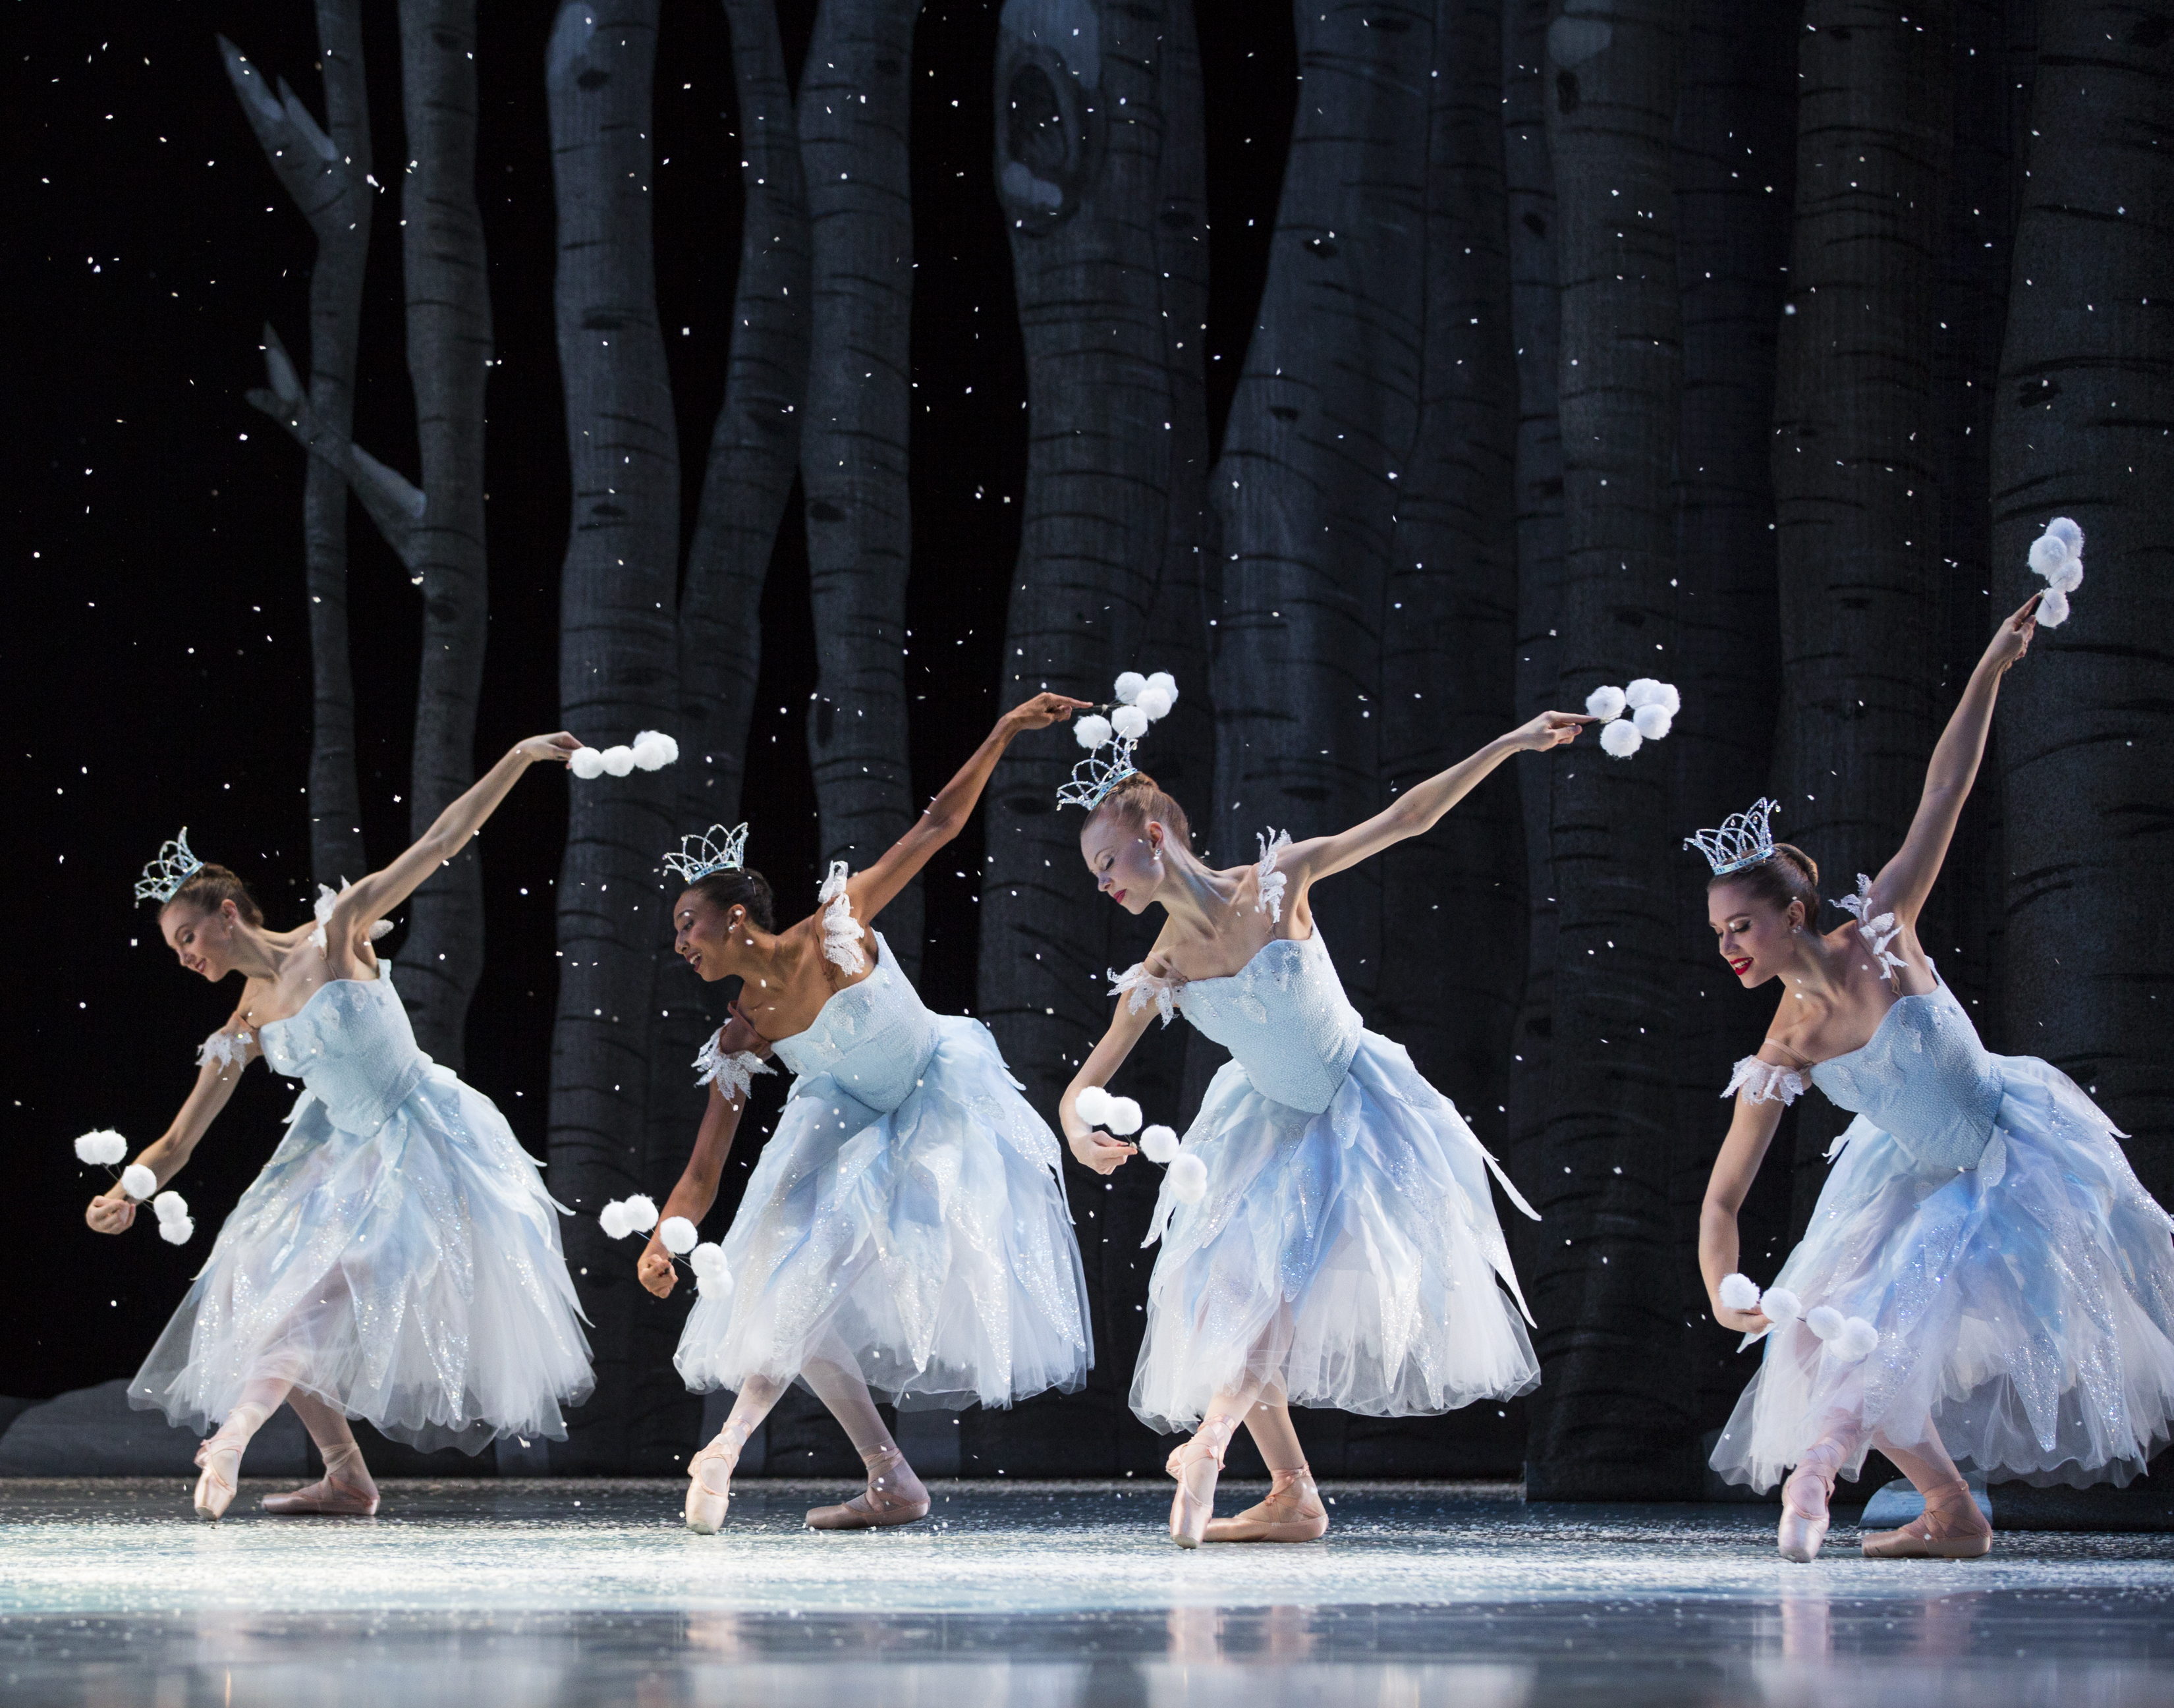 Pacific Northwest Ballet company dancers in the snow scene from George Balanchine's The Nutcracker®, choreographed by George Balanchine © The George Balanchine Trust. PNB's production features sets and costumes designed by children's author and illustrator Ian Falconer (Olivia the Pig) and runs November 25 – December 28, 2016. Photo © Angela Sterling.